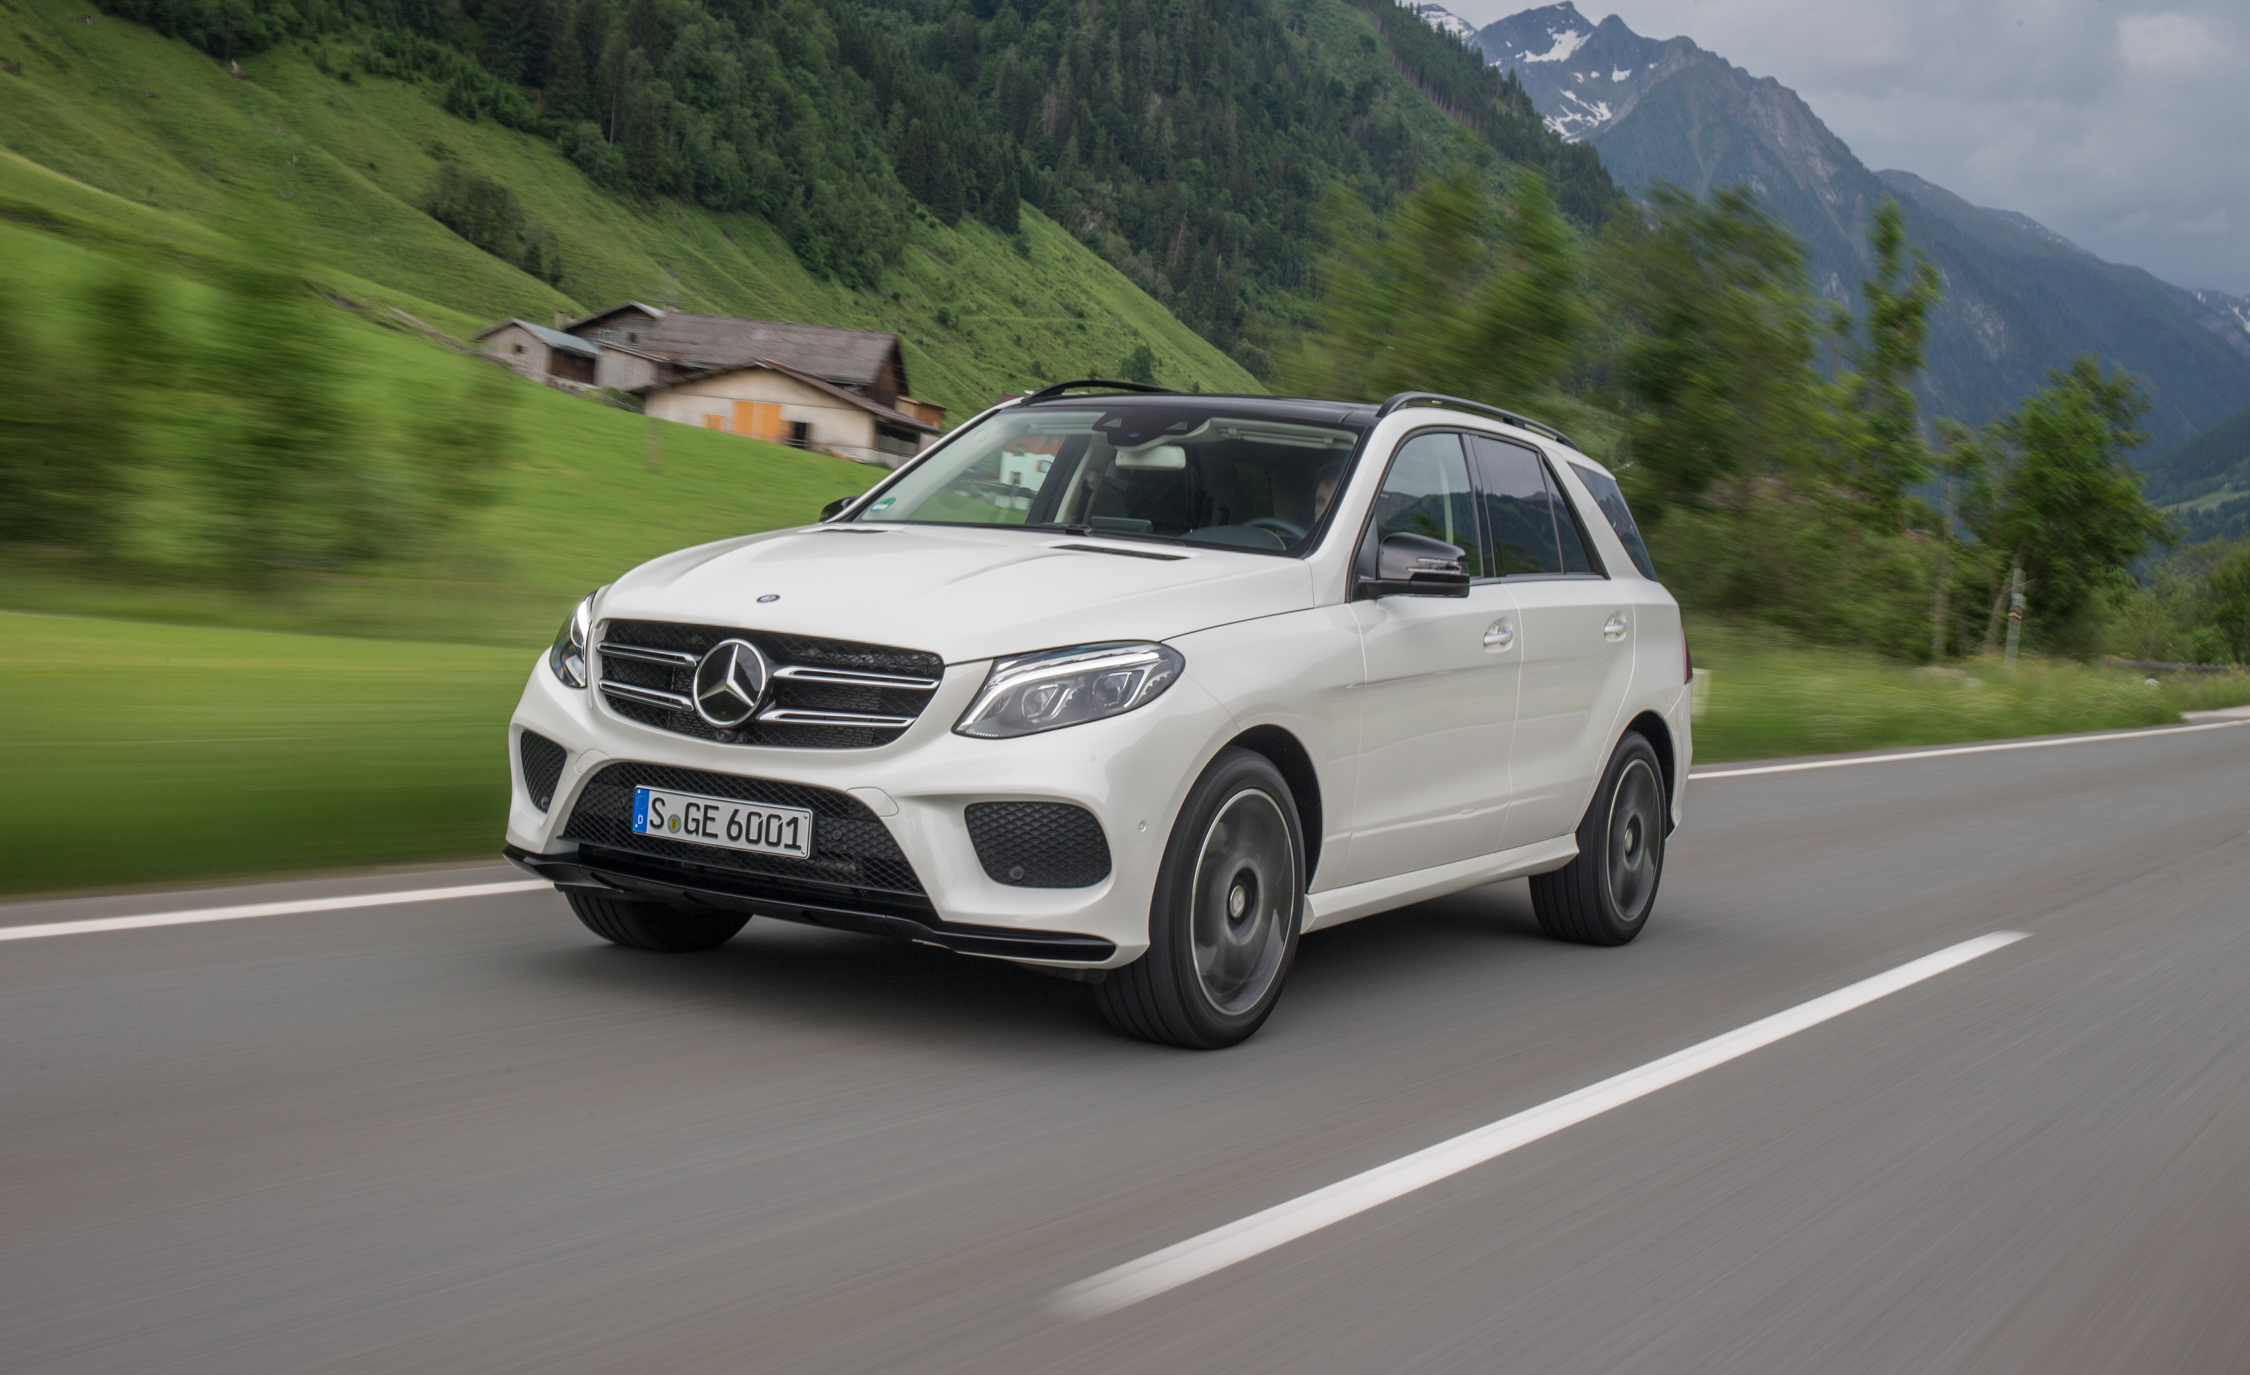 2016 Mercedes Benz GLE400 4MATIC (Photo 18 of 43)